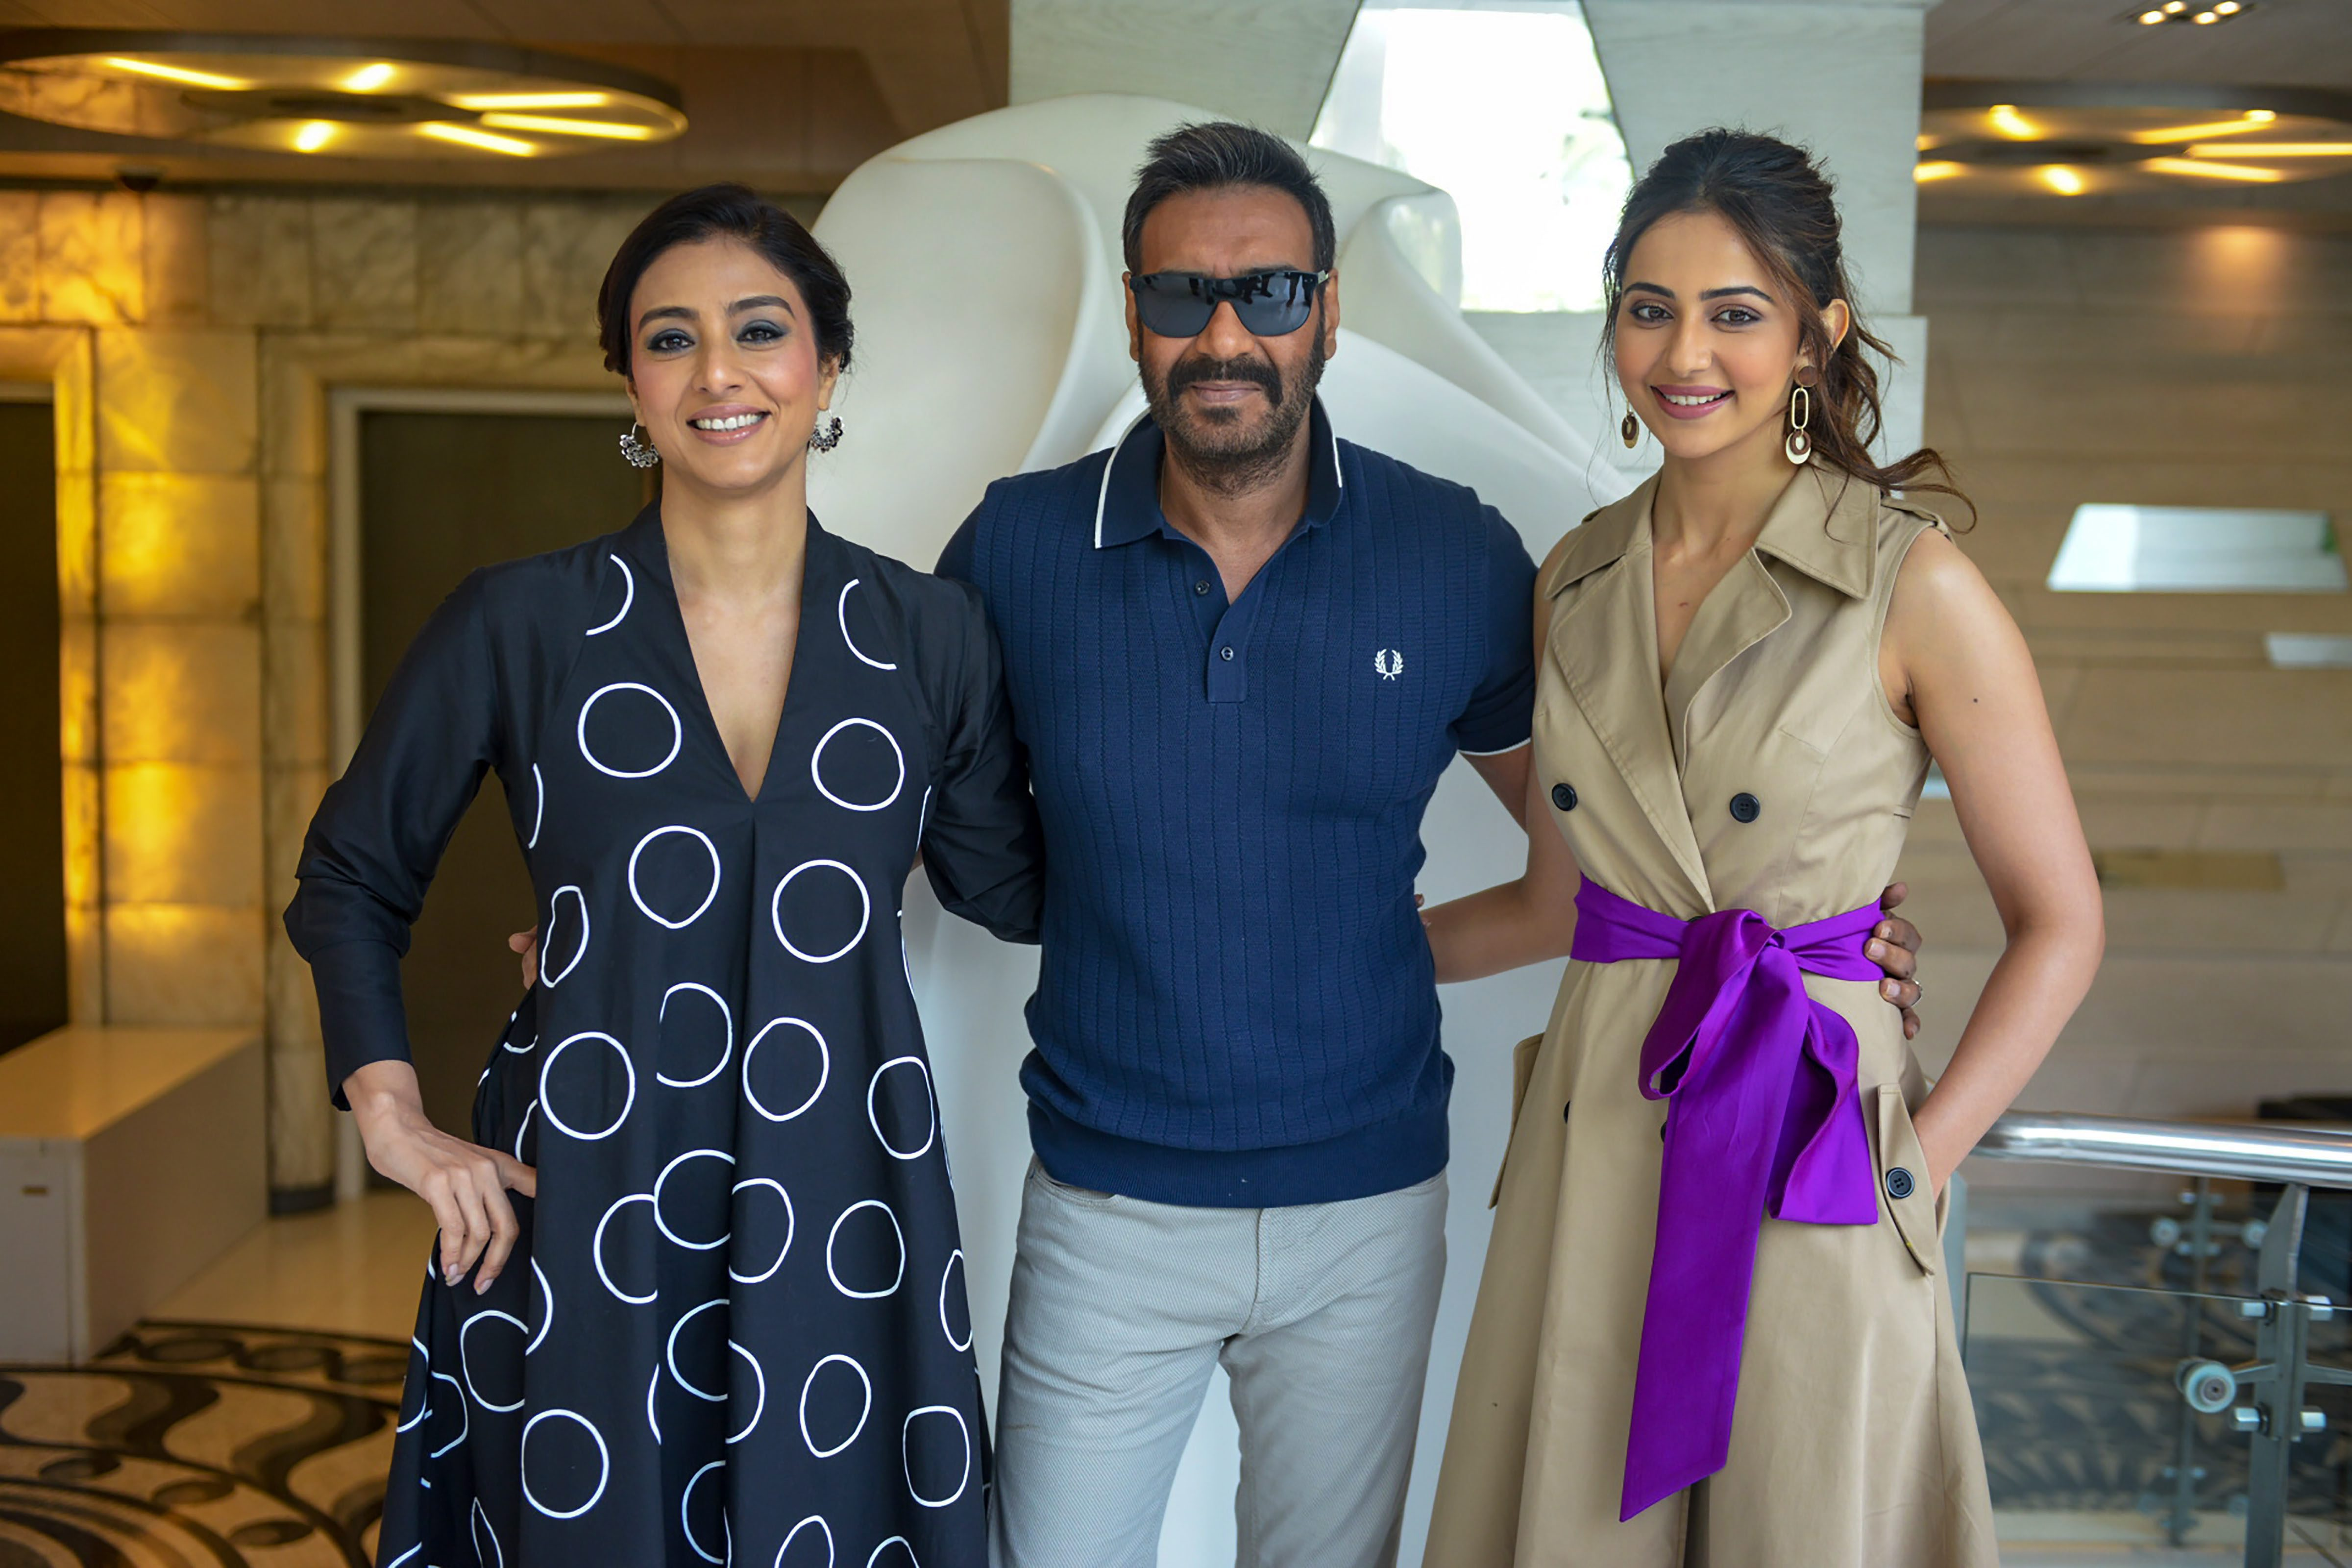 Bollywood actors Tabu, Ajay Devgn and Rakul Preet Singh during a promotion of their upcoming film 'De De Pyaar De', in New Delhi - PTI